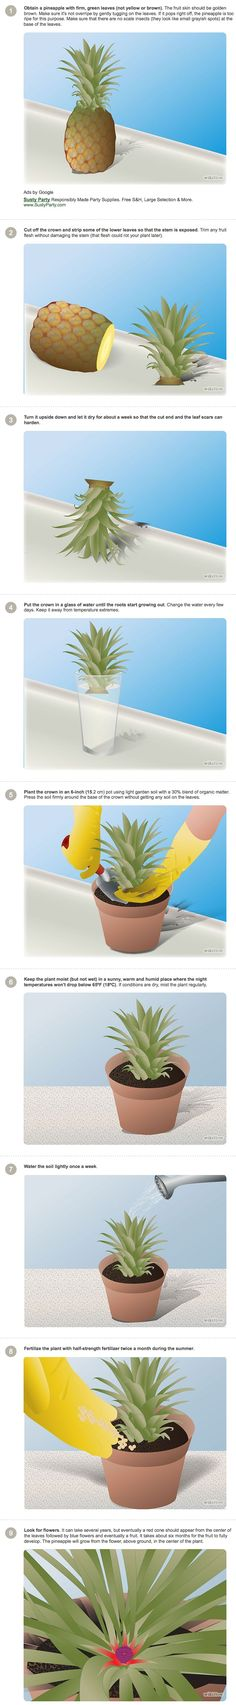 How to grow a pineapple-